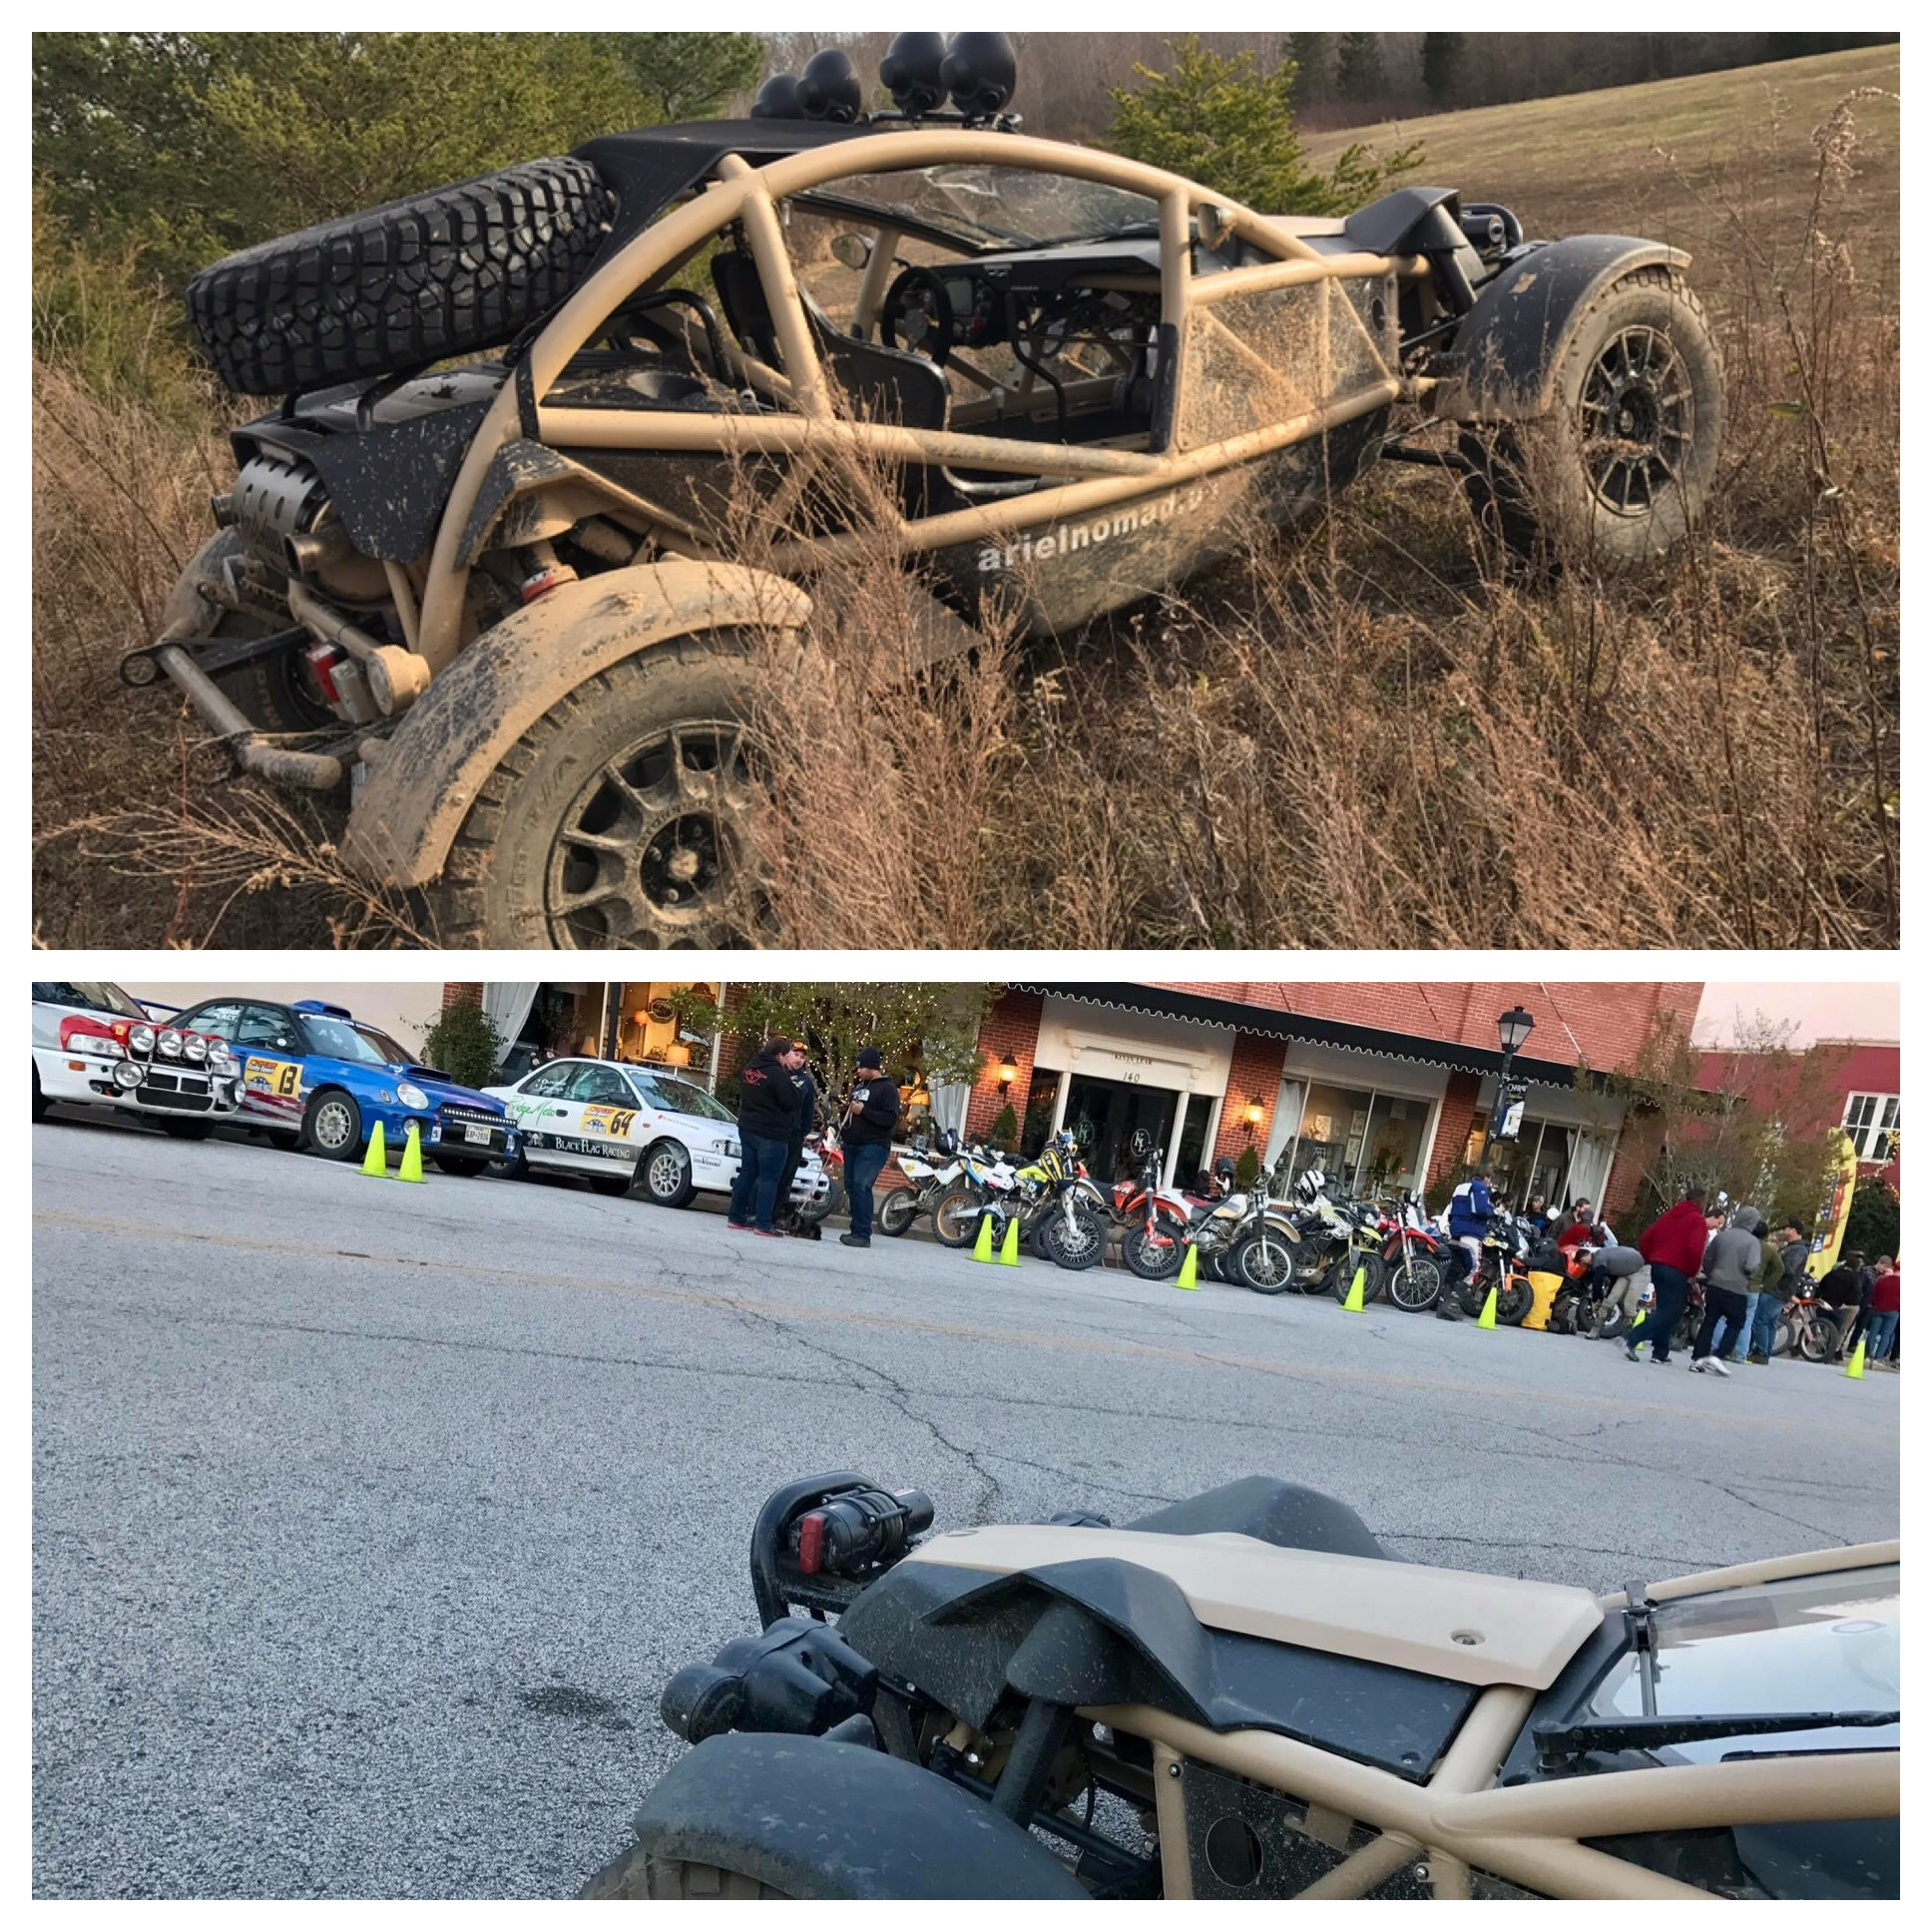 March, 2017 - Attending the Sand Blast Rally with the Ariel Nomad